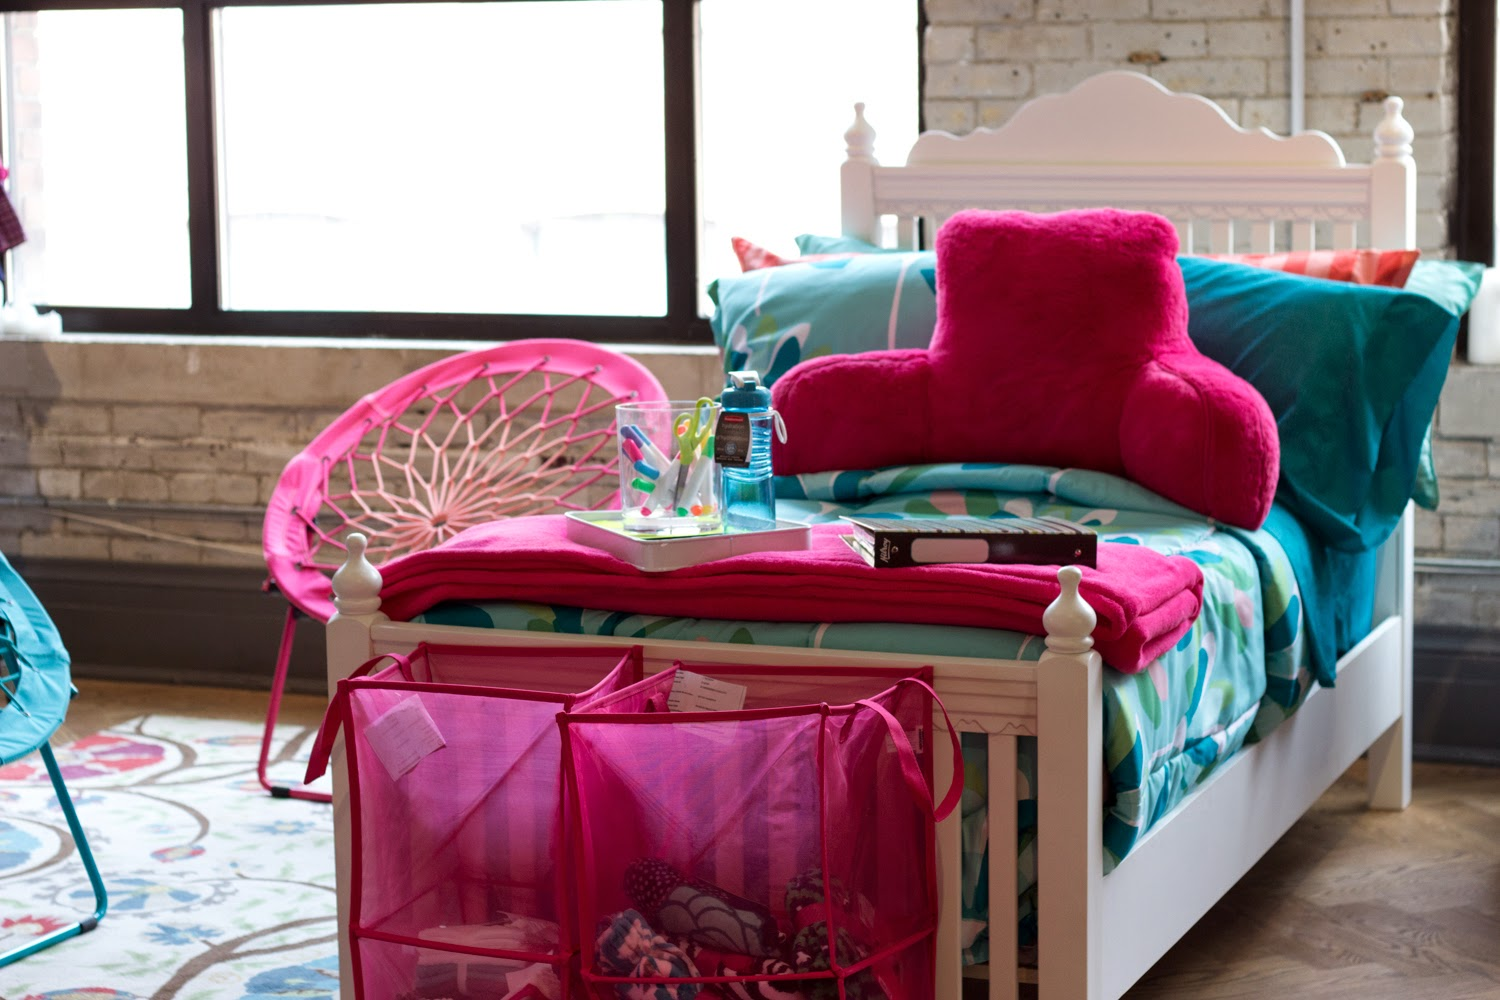 Target-Fall-Preview-Accessories, Fashion-event, home-decor, colour-bedroom-sets